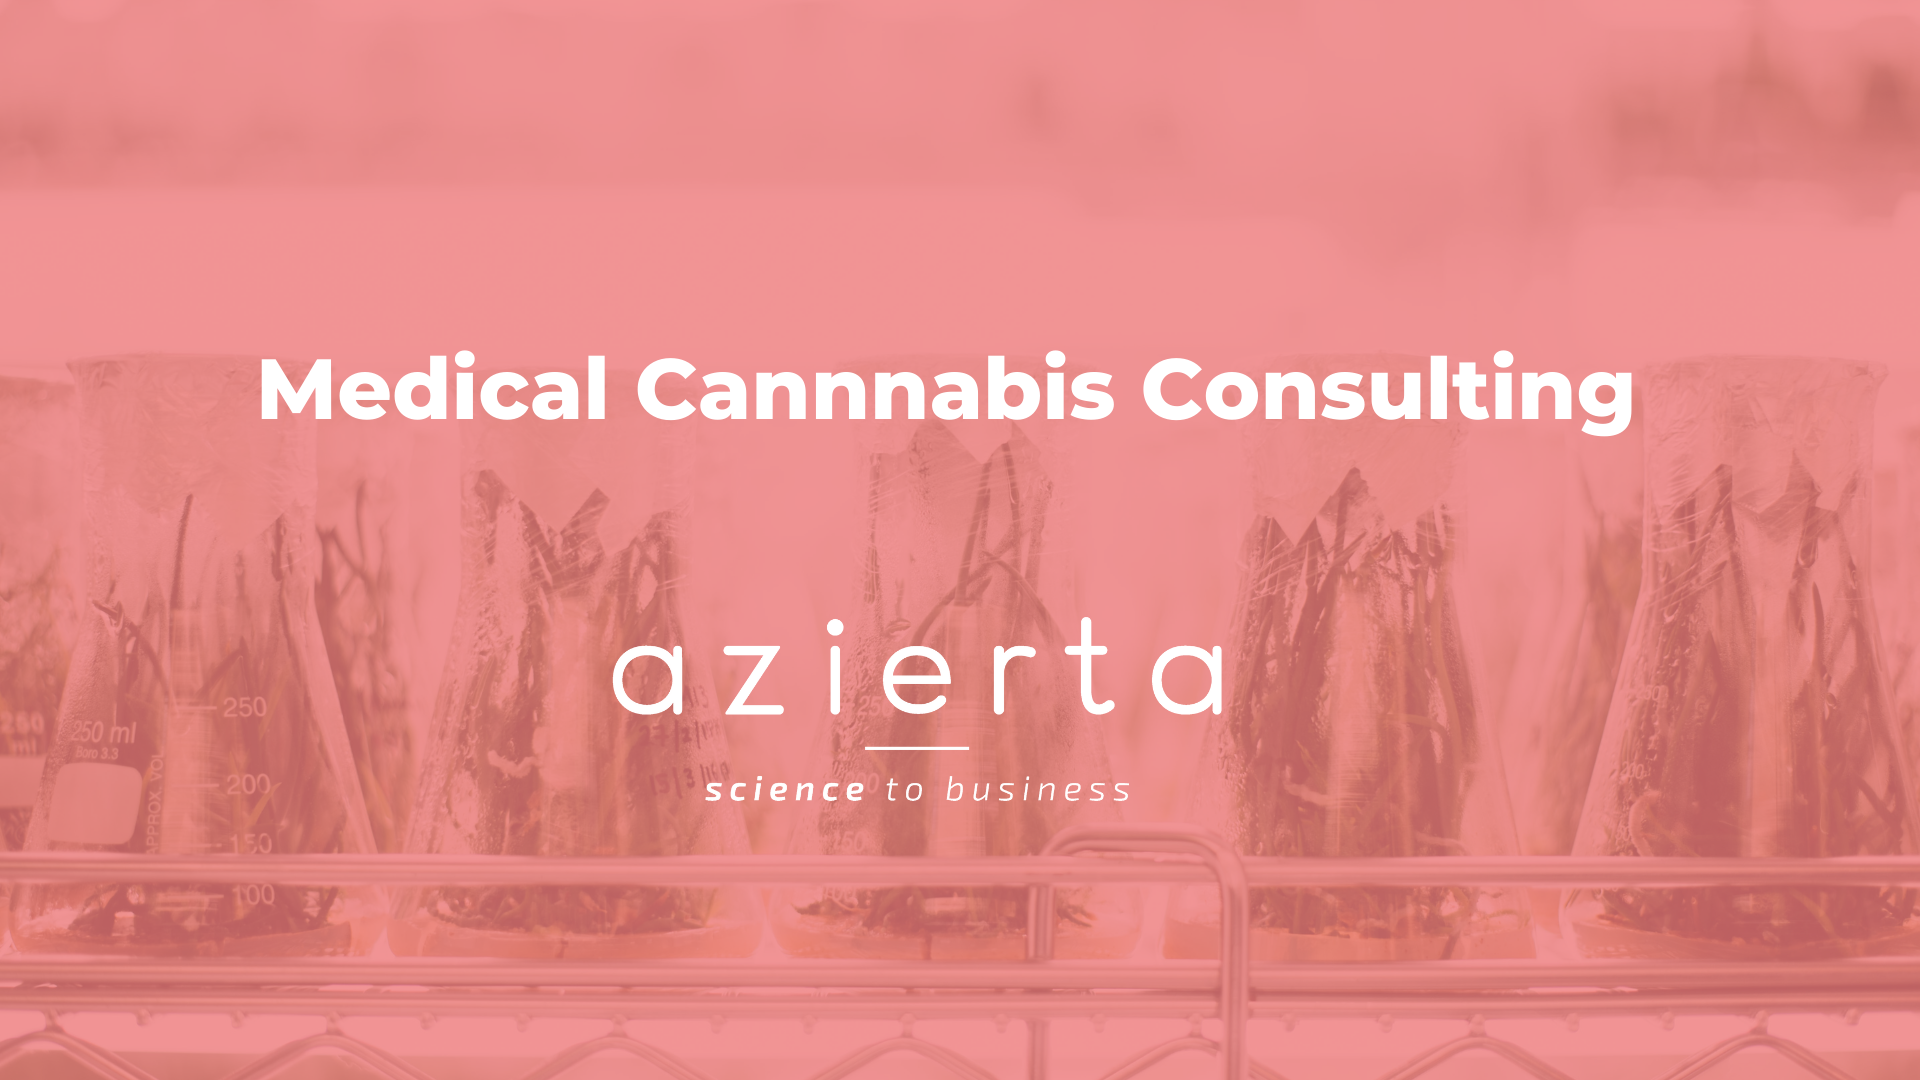 Medical Cannabis Consulting